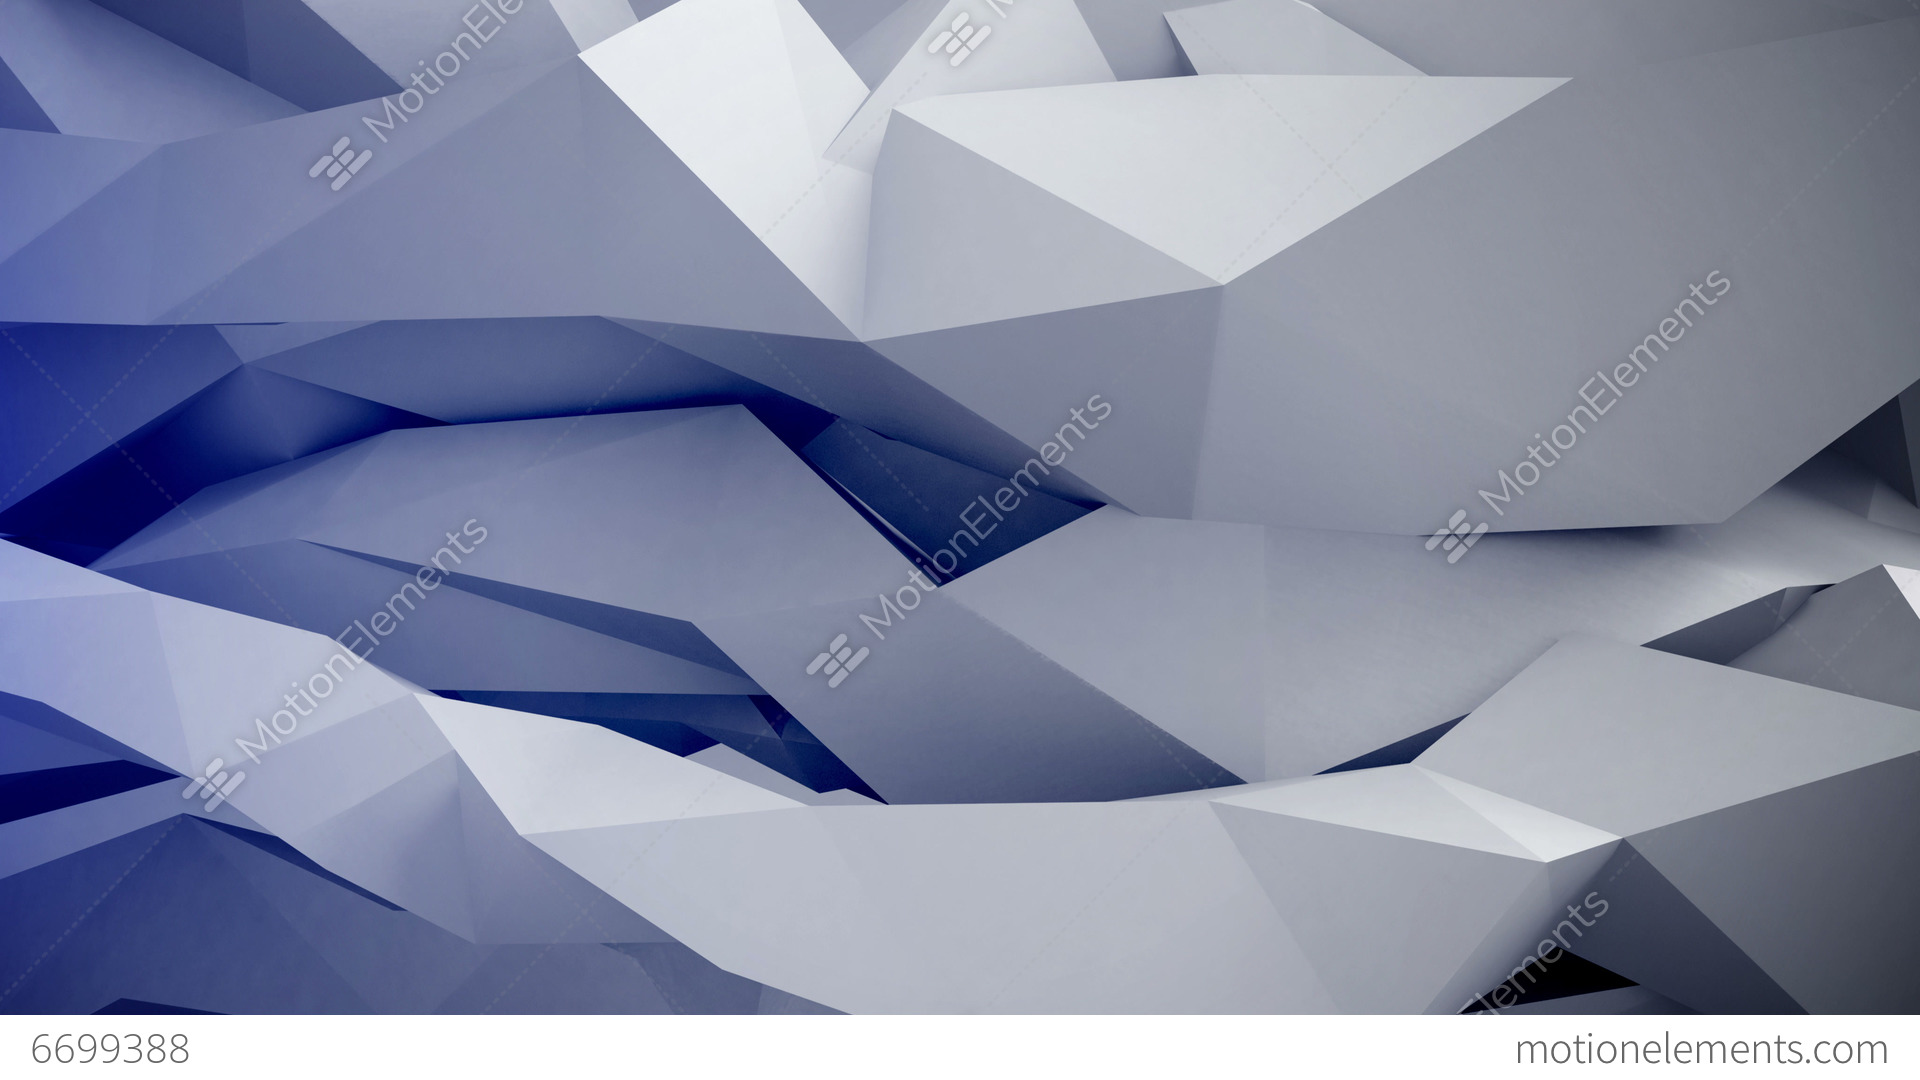 Adstract 3d Geometric Shapes Motion Vj Loop Stock Animation Video